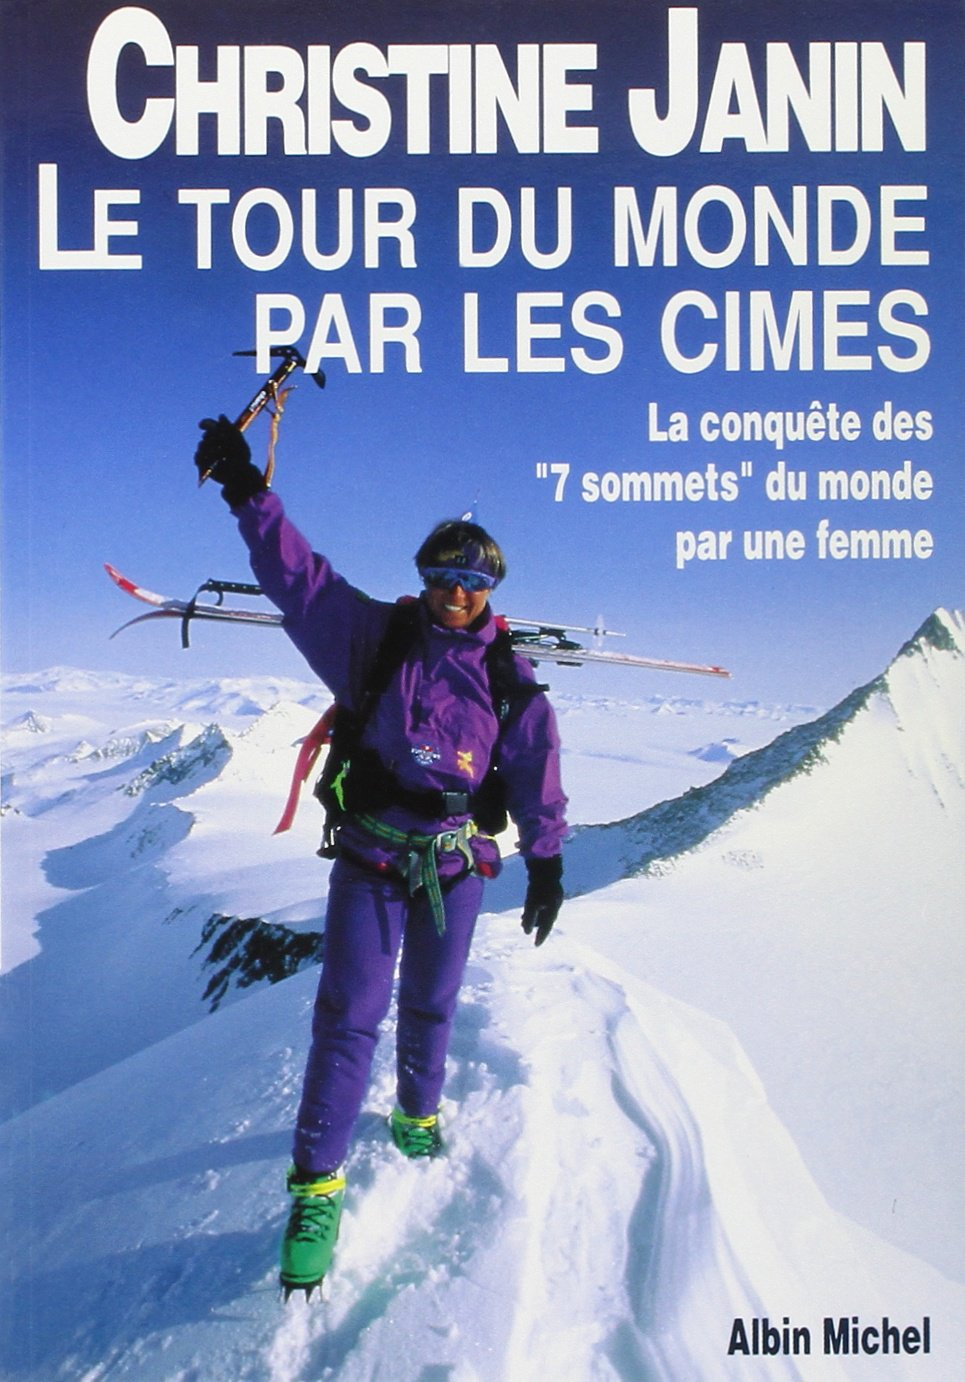 Tour Du Monde Par Les Cimes (Le) (Voyages - Reportages - Expeditions - Sports) (French Edition) by Albin Michel